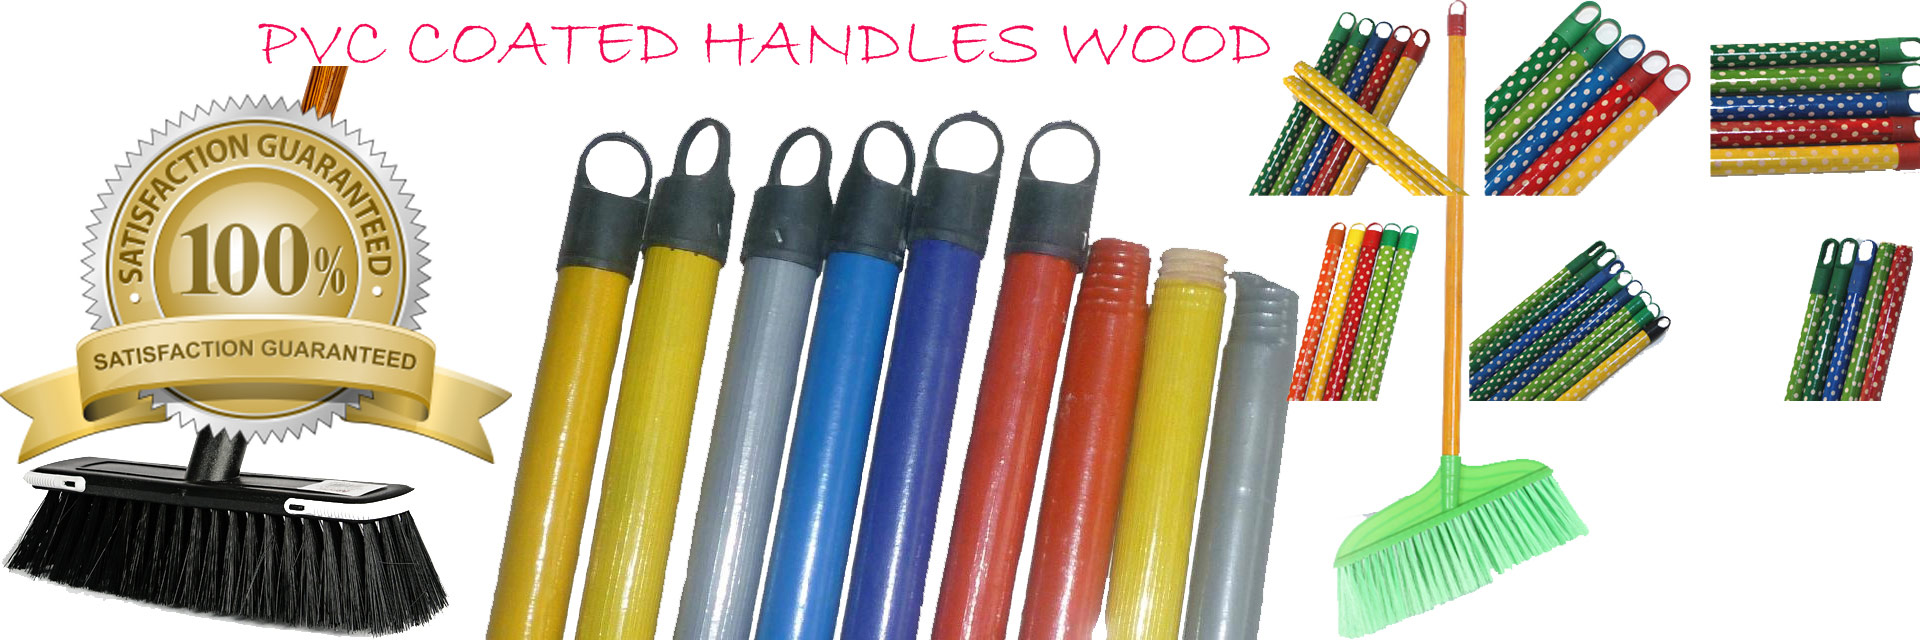 PVC wooden sticks manufacturer